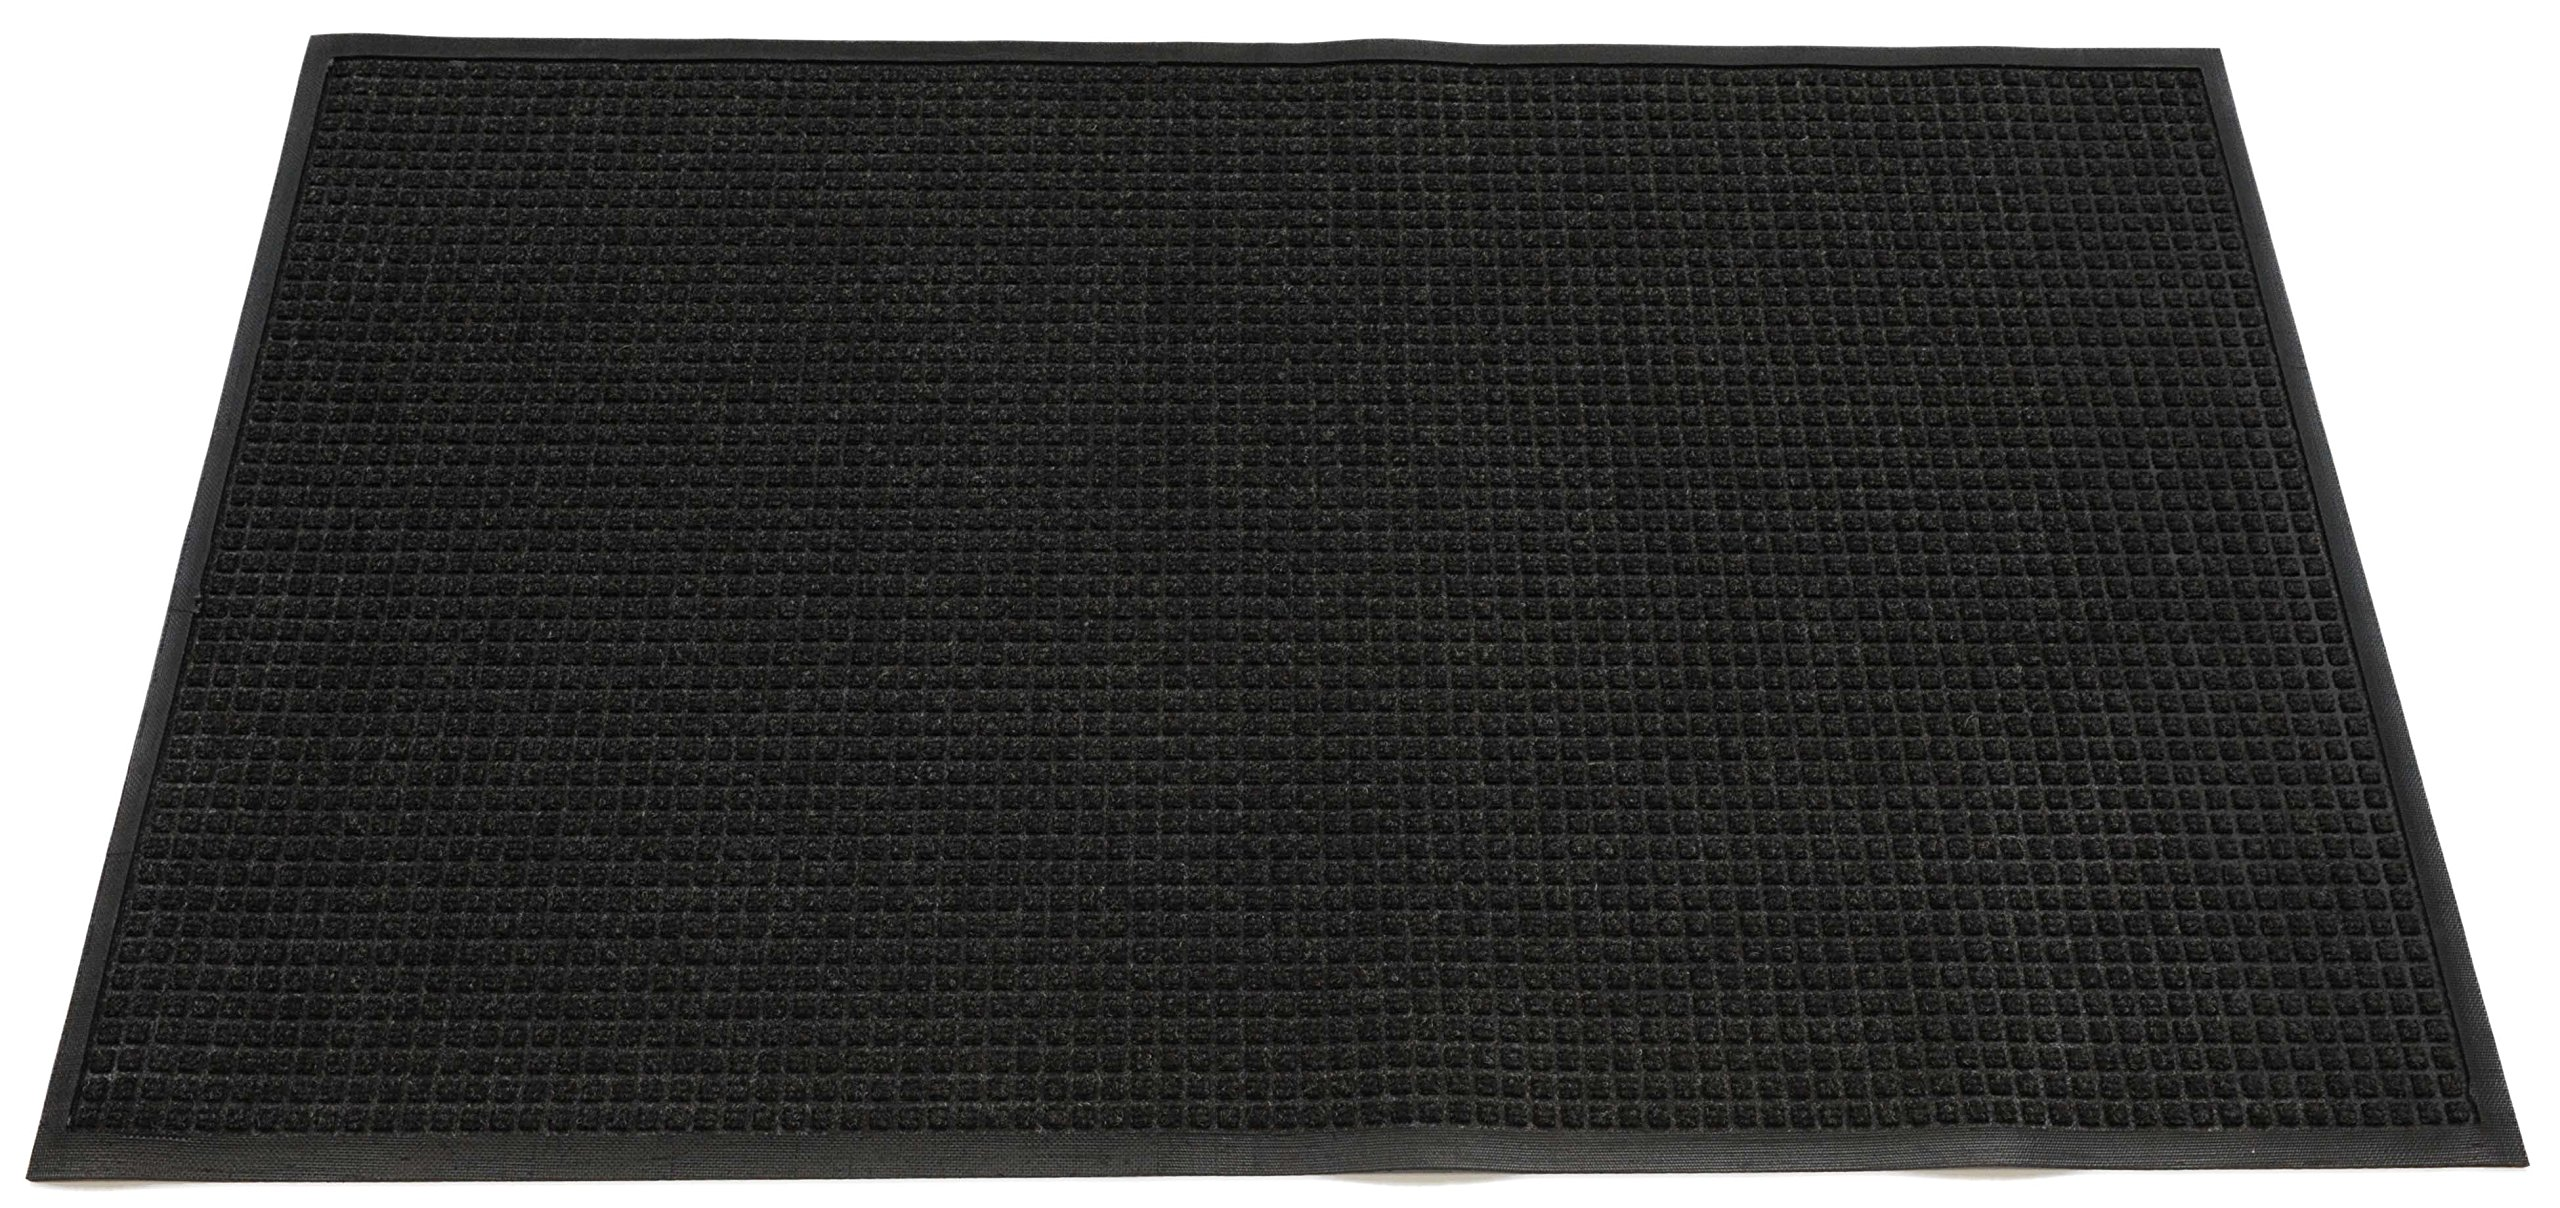 Americo Manufacturing 6907068 Aqua Dam Bi-Level Polypropylene Indoor/Outdoor Rubber Backed Matting, 6' x 8', Charcoal